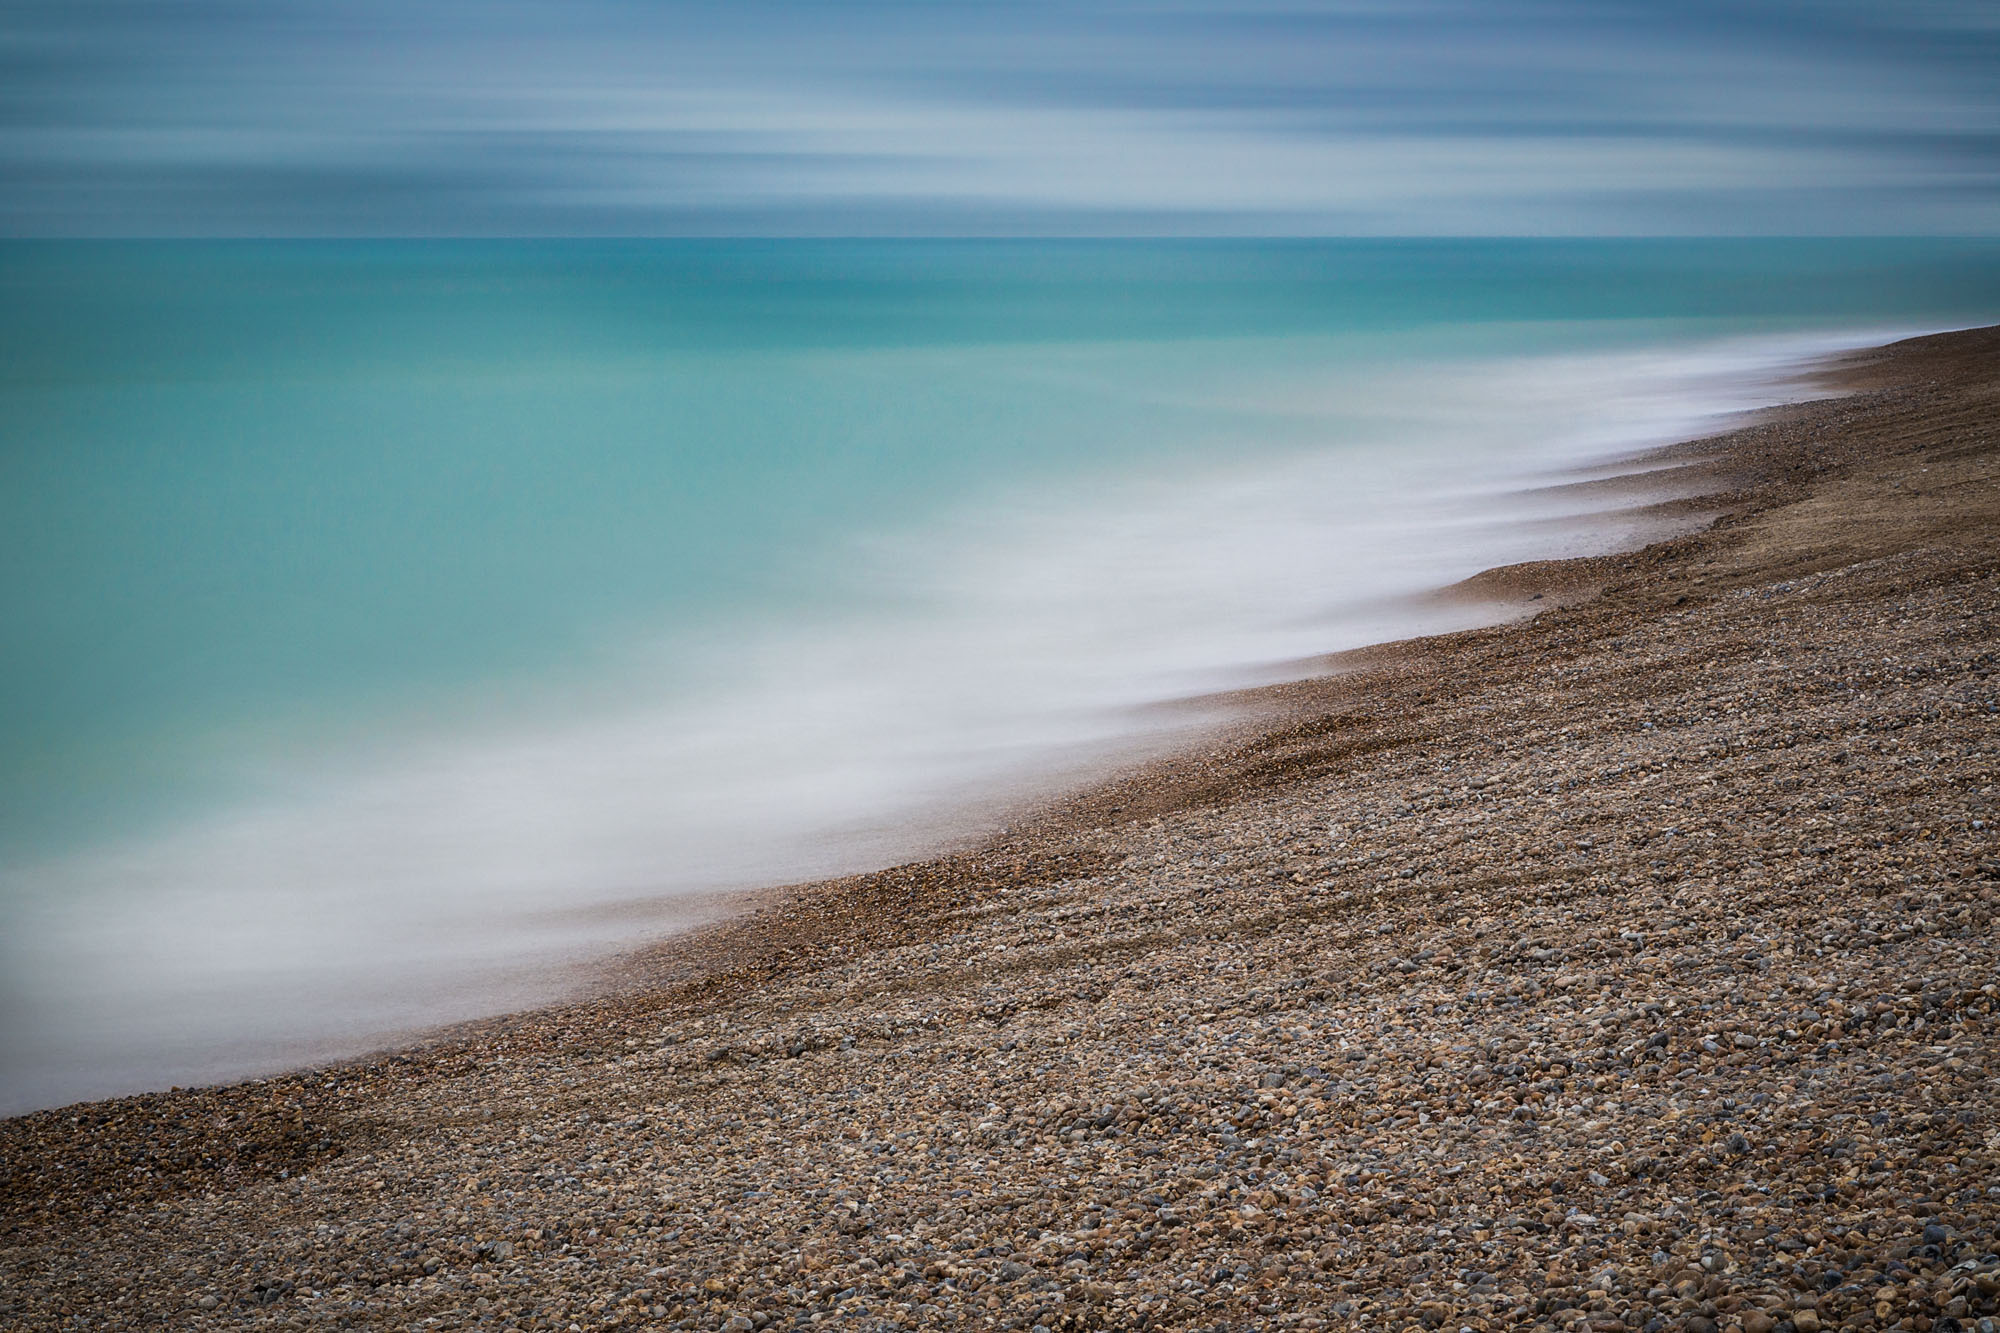 minimal abstract long exposure photograph blurring the rushing tides on a stone pebble beach in Sussex UK